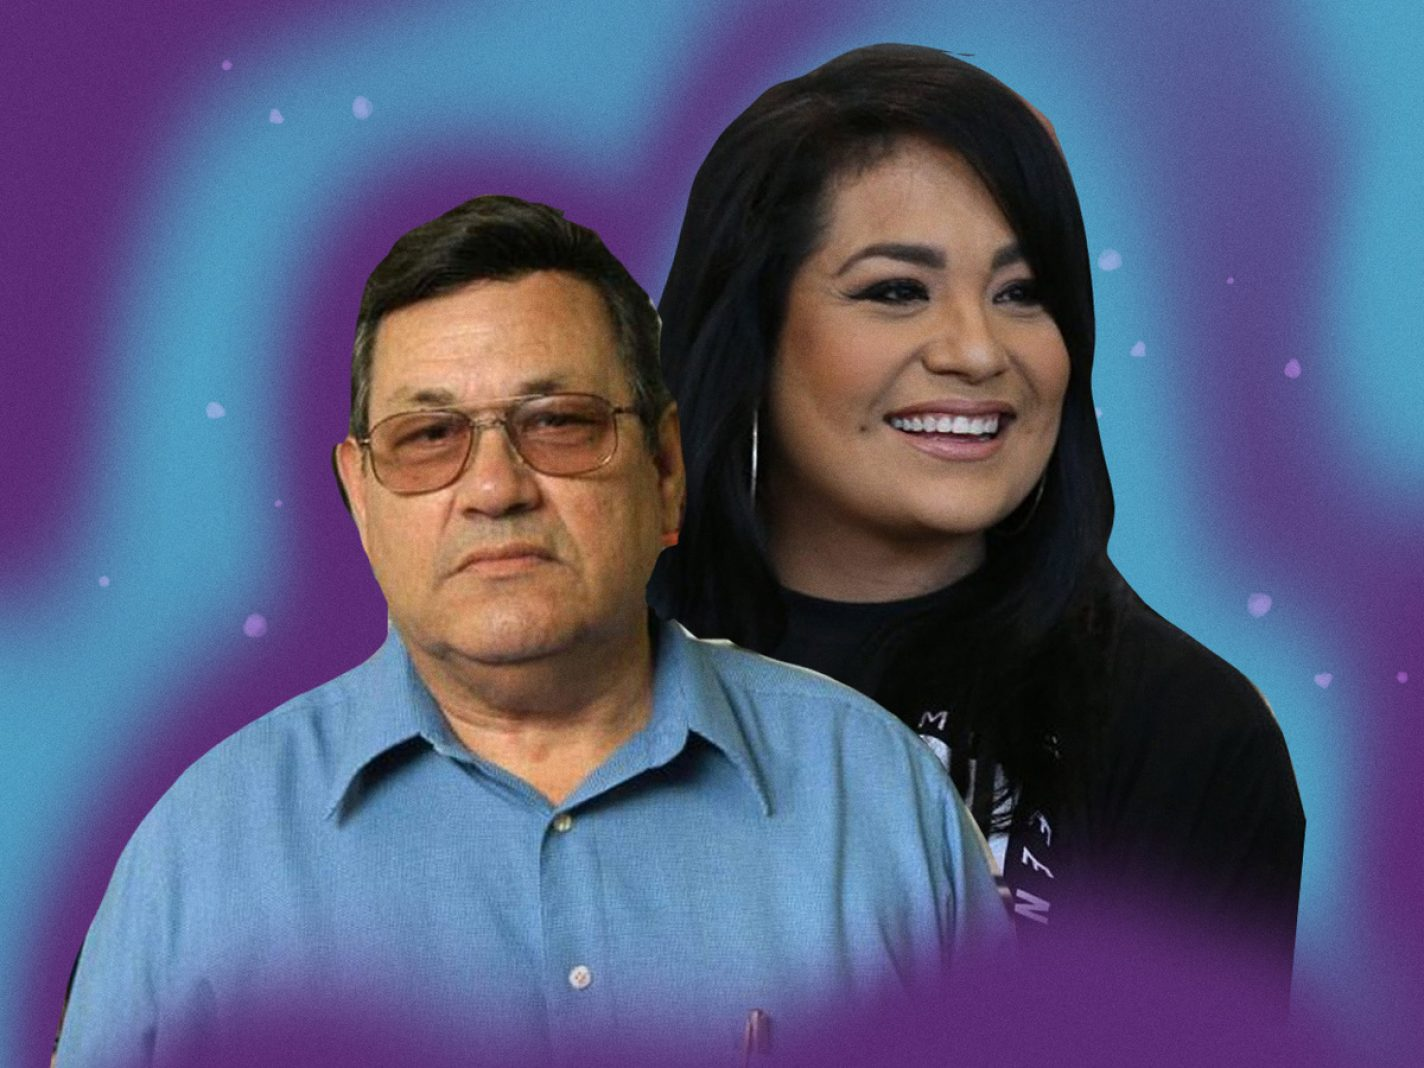 Selena's Father, Netflix Sued by Producer Over Young Selena Series